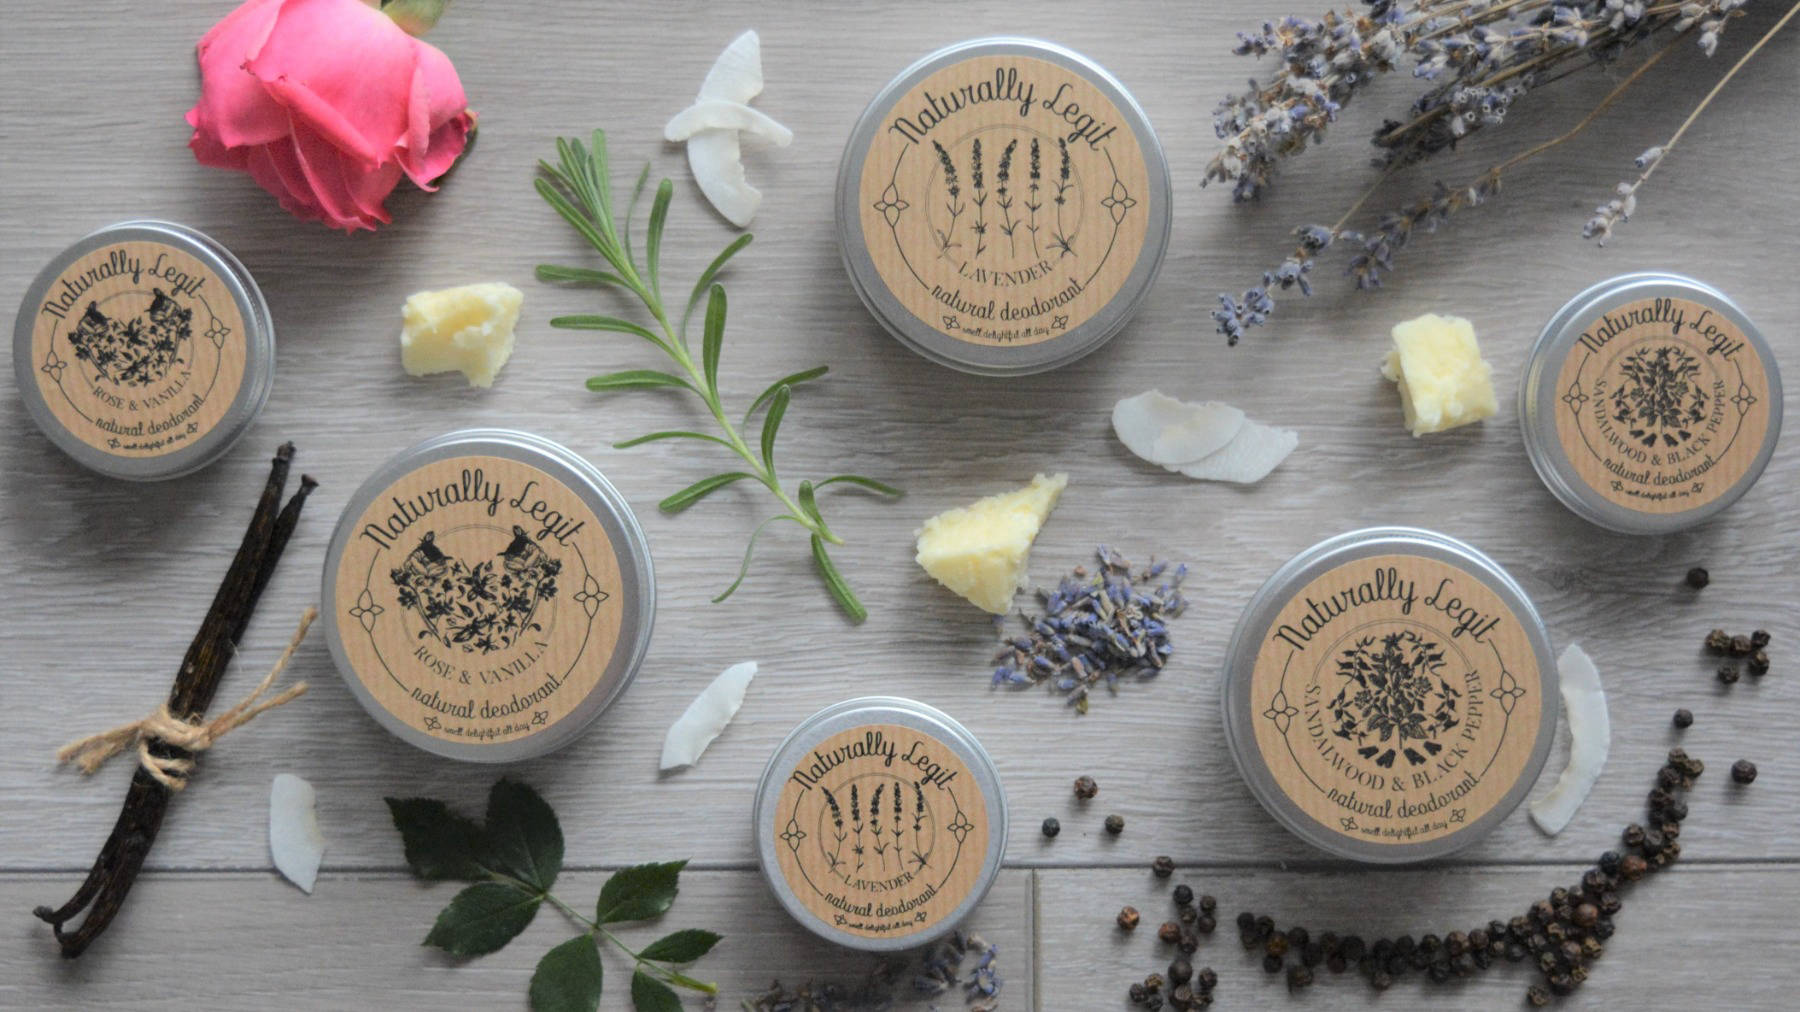 Variety of Naturally Legit natural deodorant with ingredients